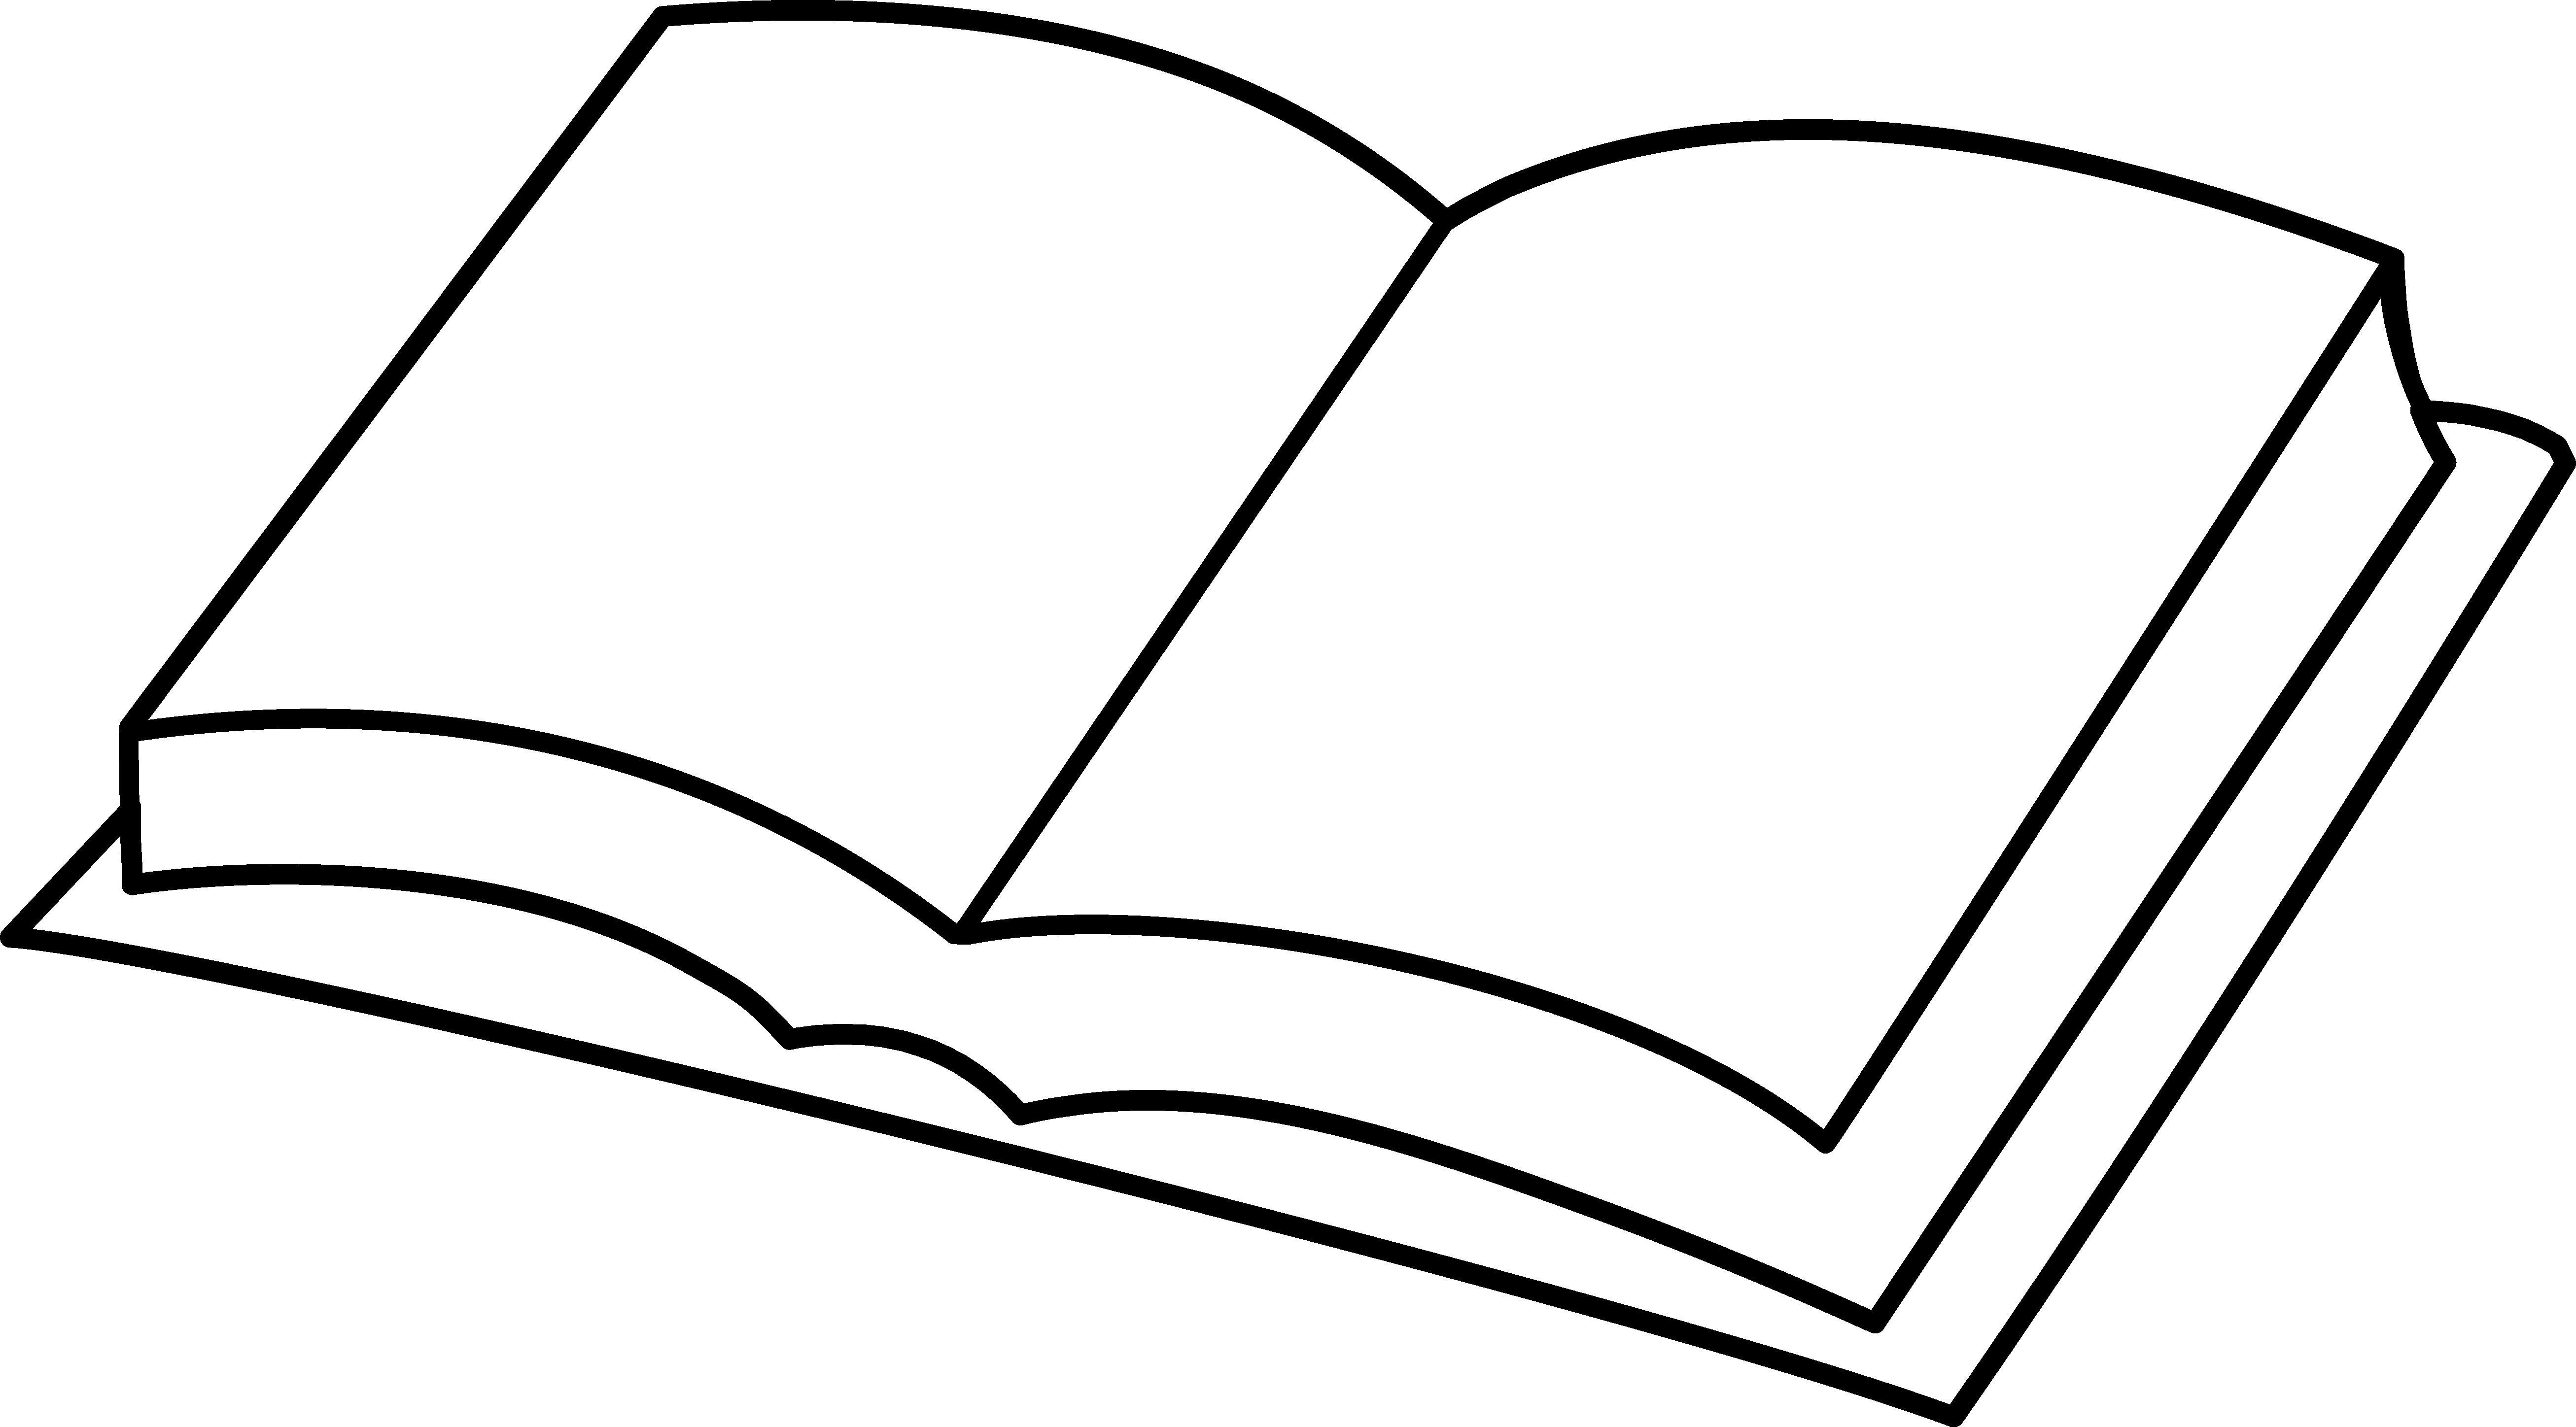 Book clipart book page Page collection book Clipart Book